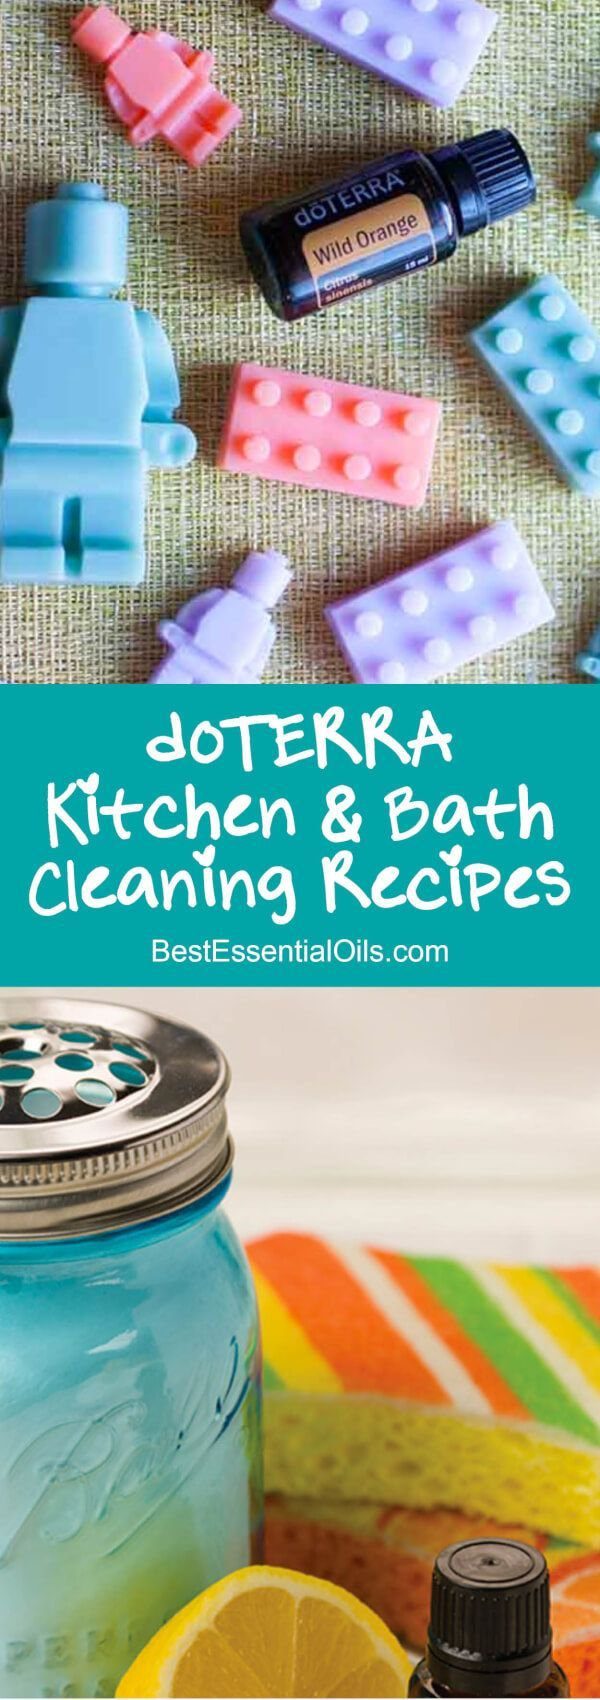 20 Best Ideas About Garbage Disposal Cleaner On Pinterest